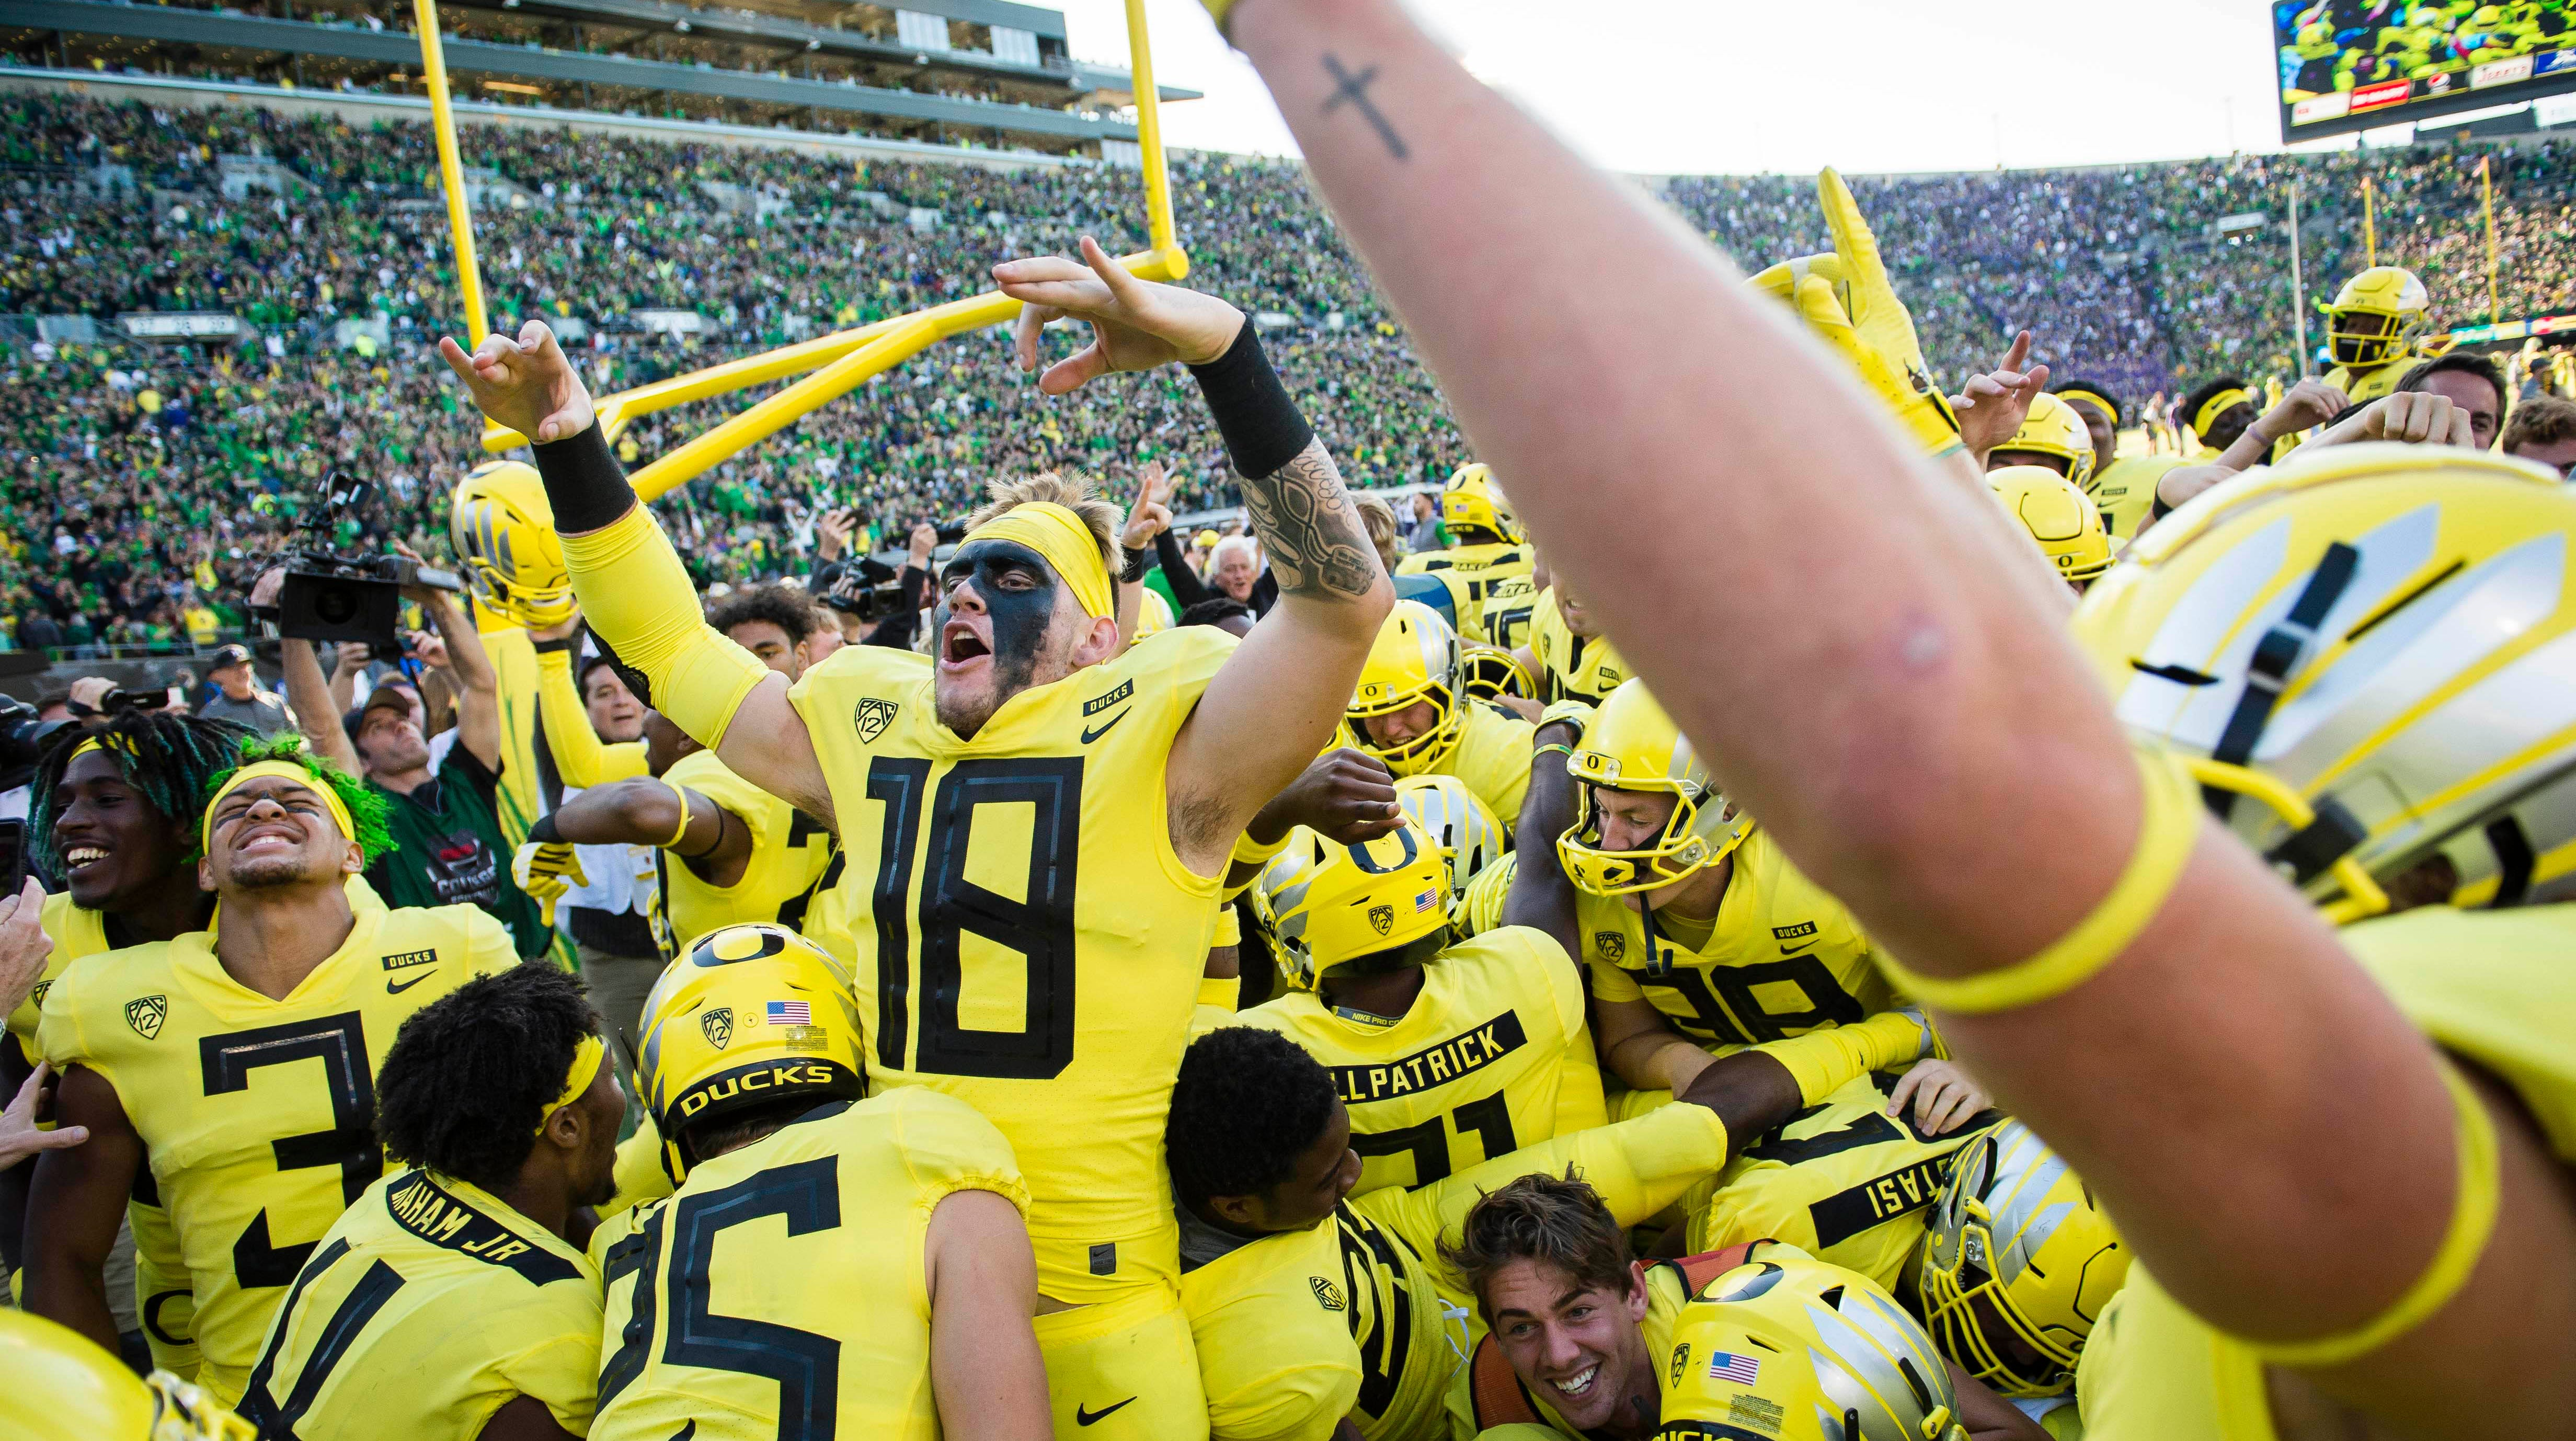 Oct 13, 2018; Eugene, OR, USA; The Oregon Ducks celebrate in the end zone after a game against Washington Huskies at Autzen Stadium. The Ducks won in overtime 30-27. Mandatory Credit: Troy Wayrynen-USA TODAY Sports